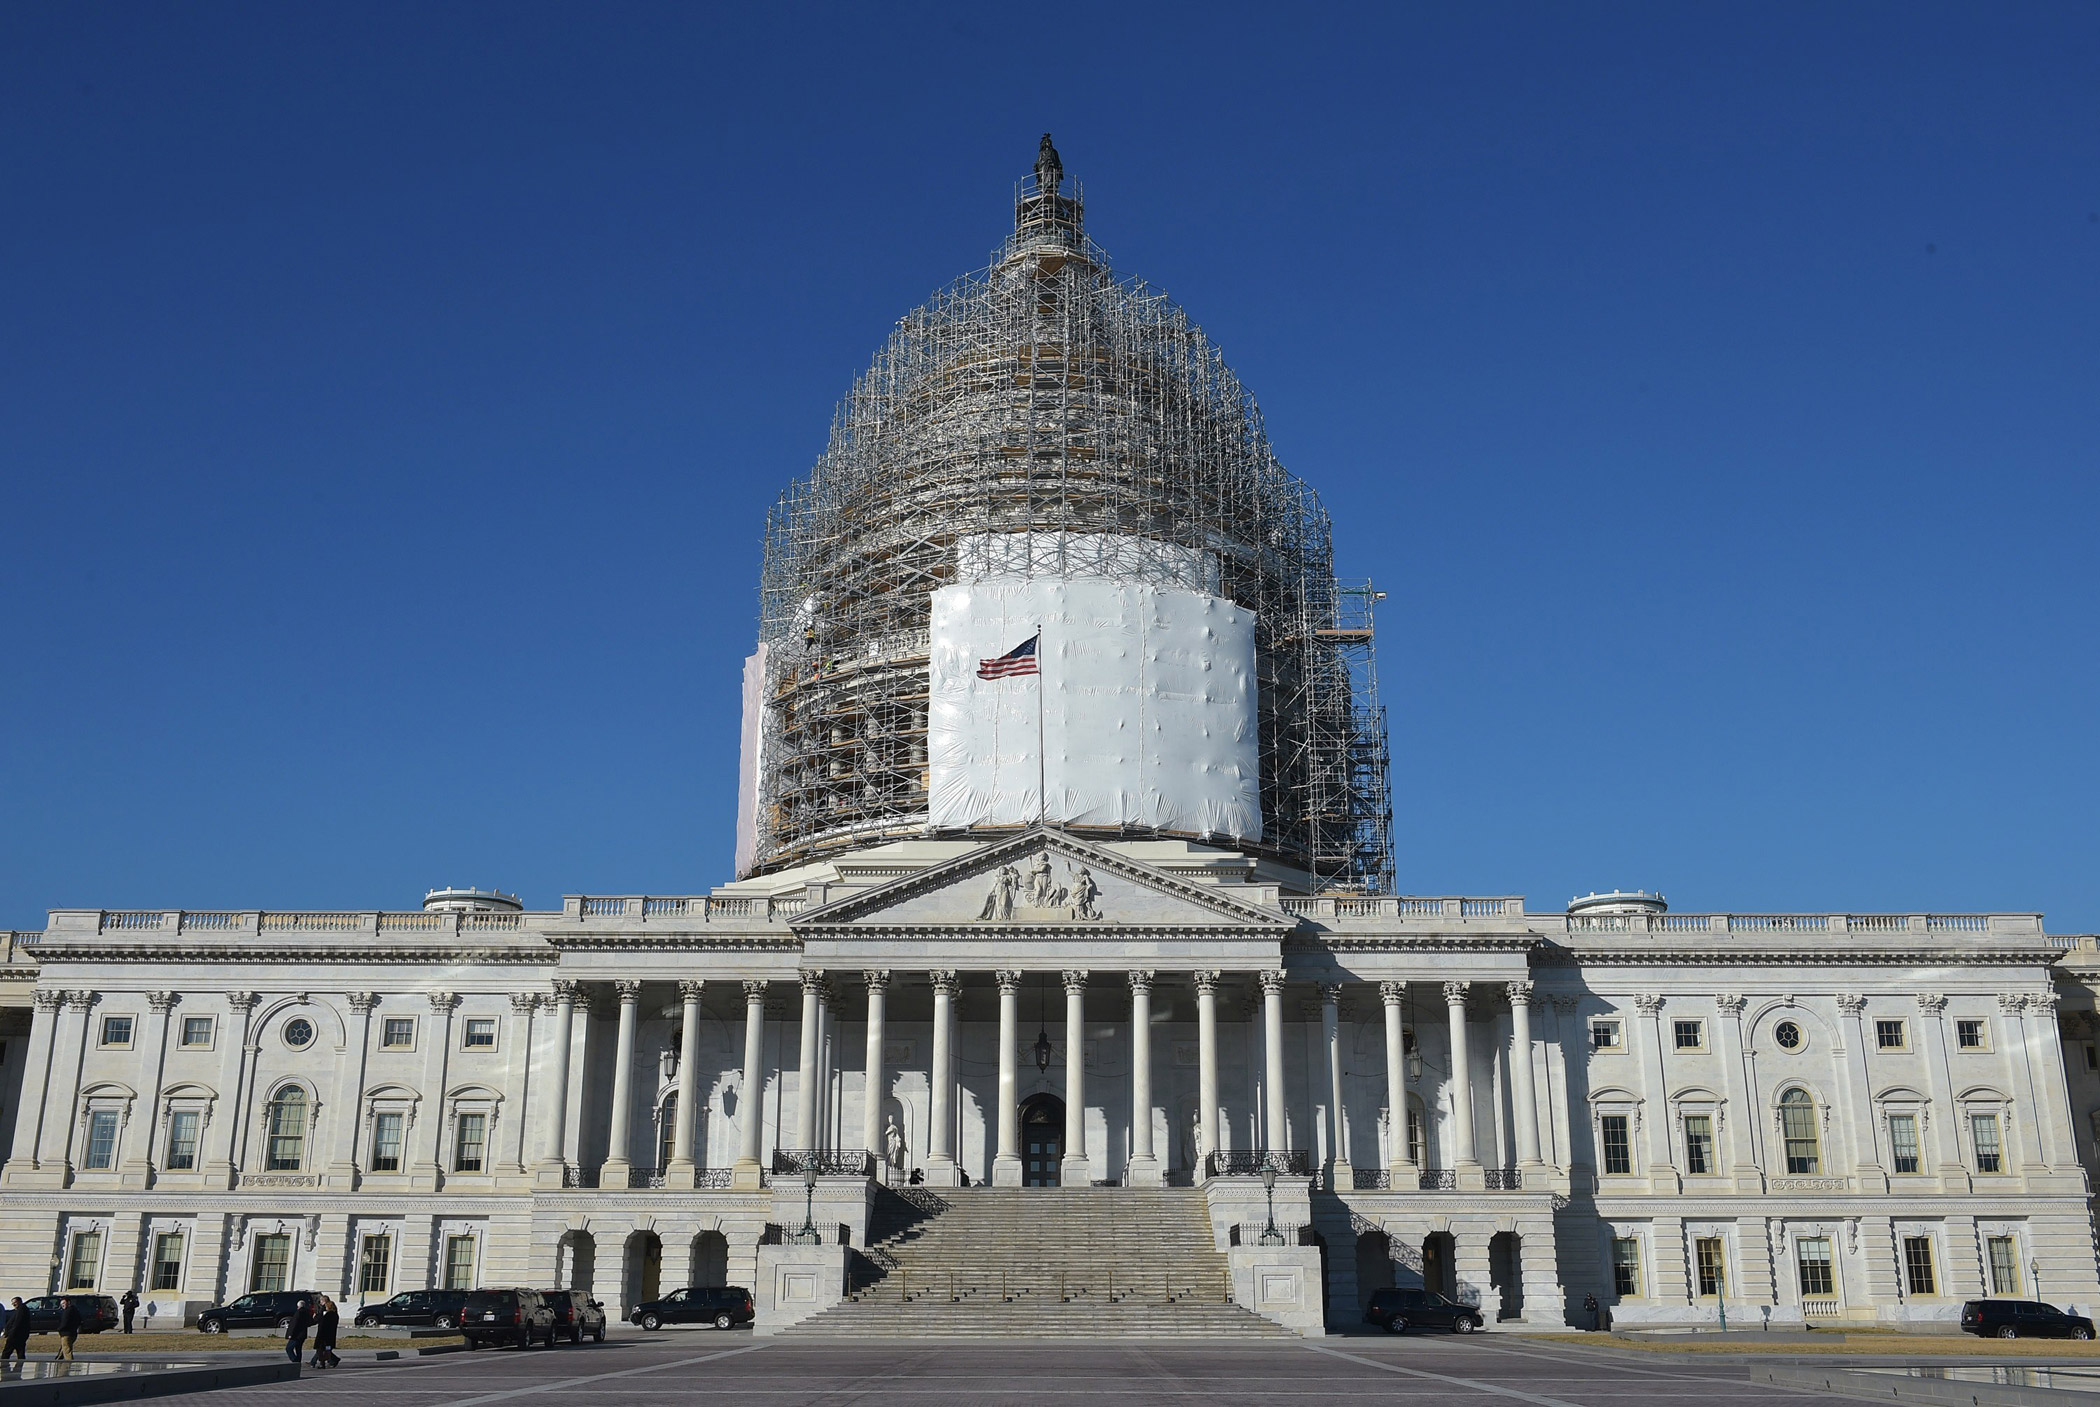 The U.S. Capitol dome, encased in scaffolding, undergoing renovation in 2015.